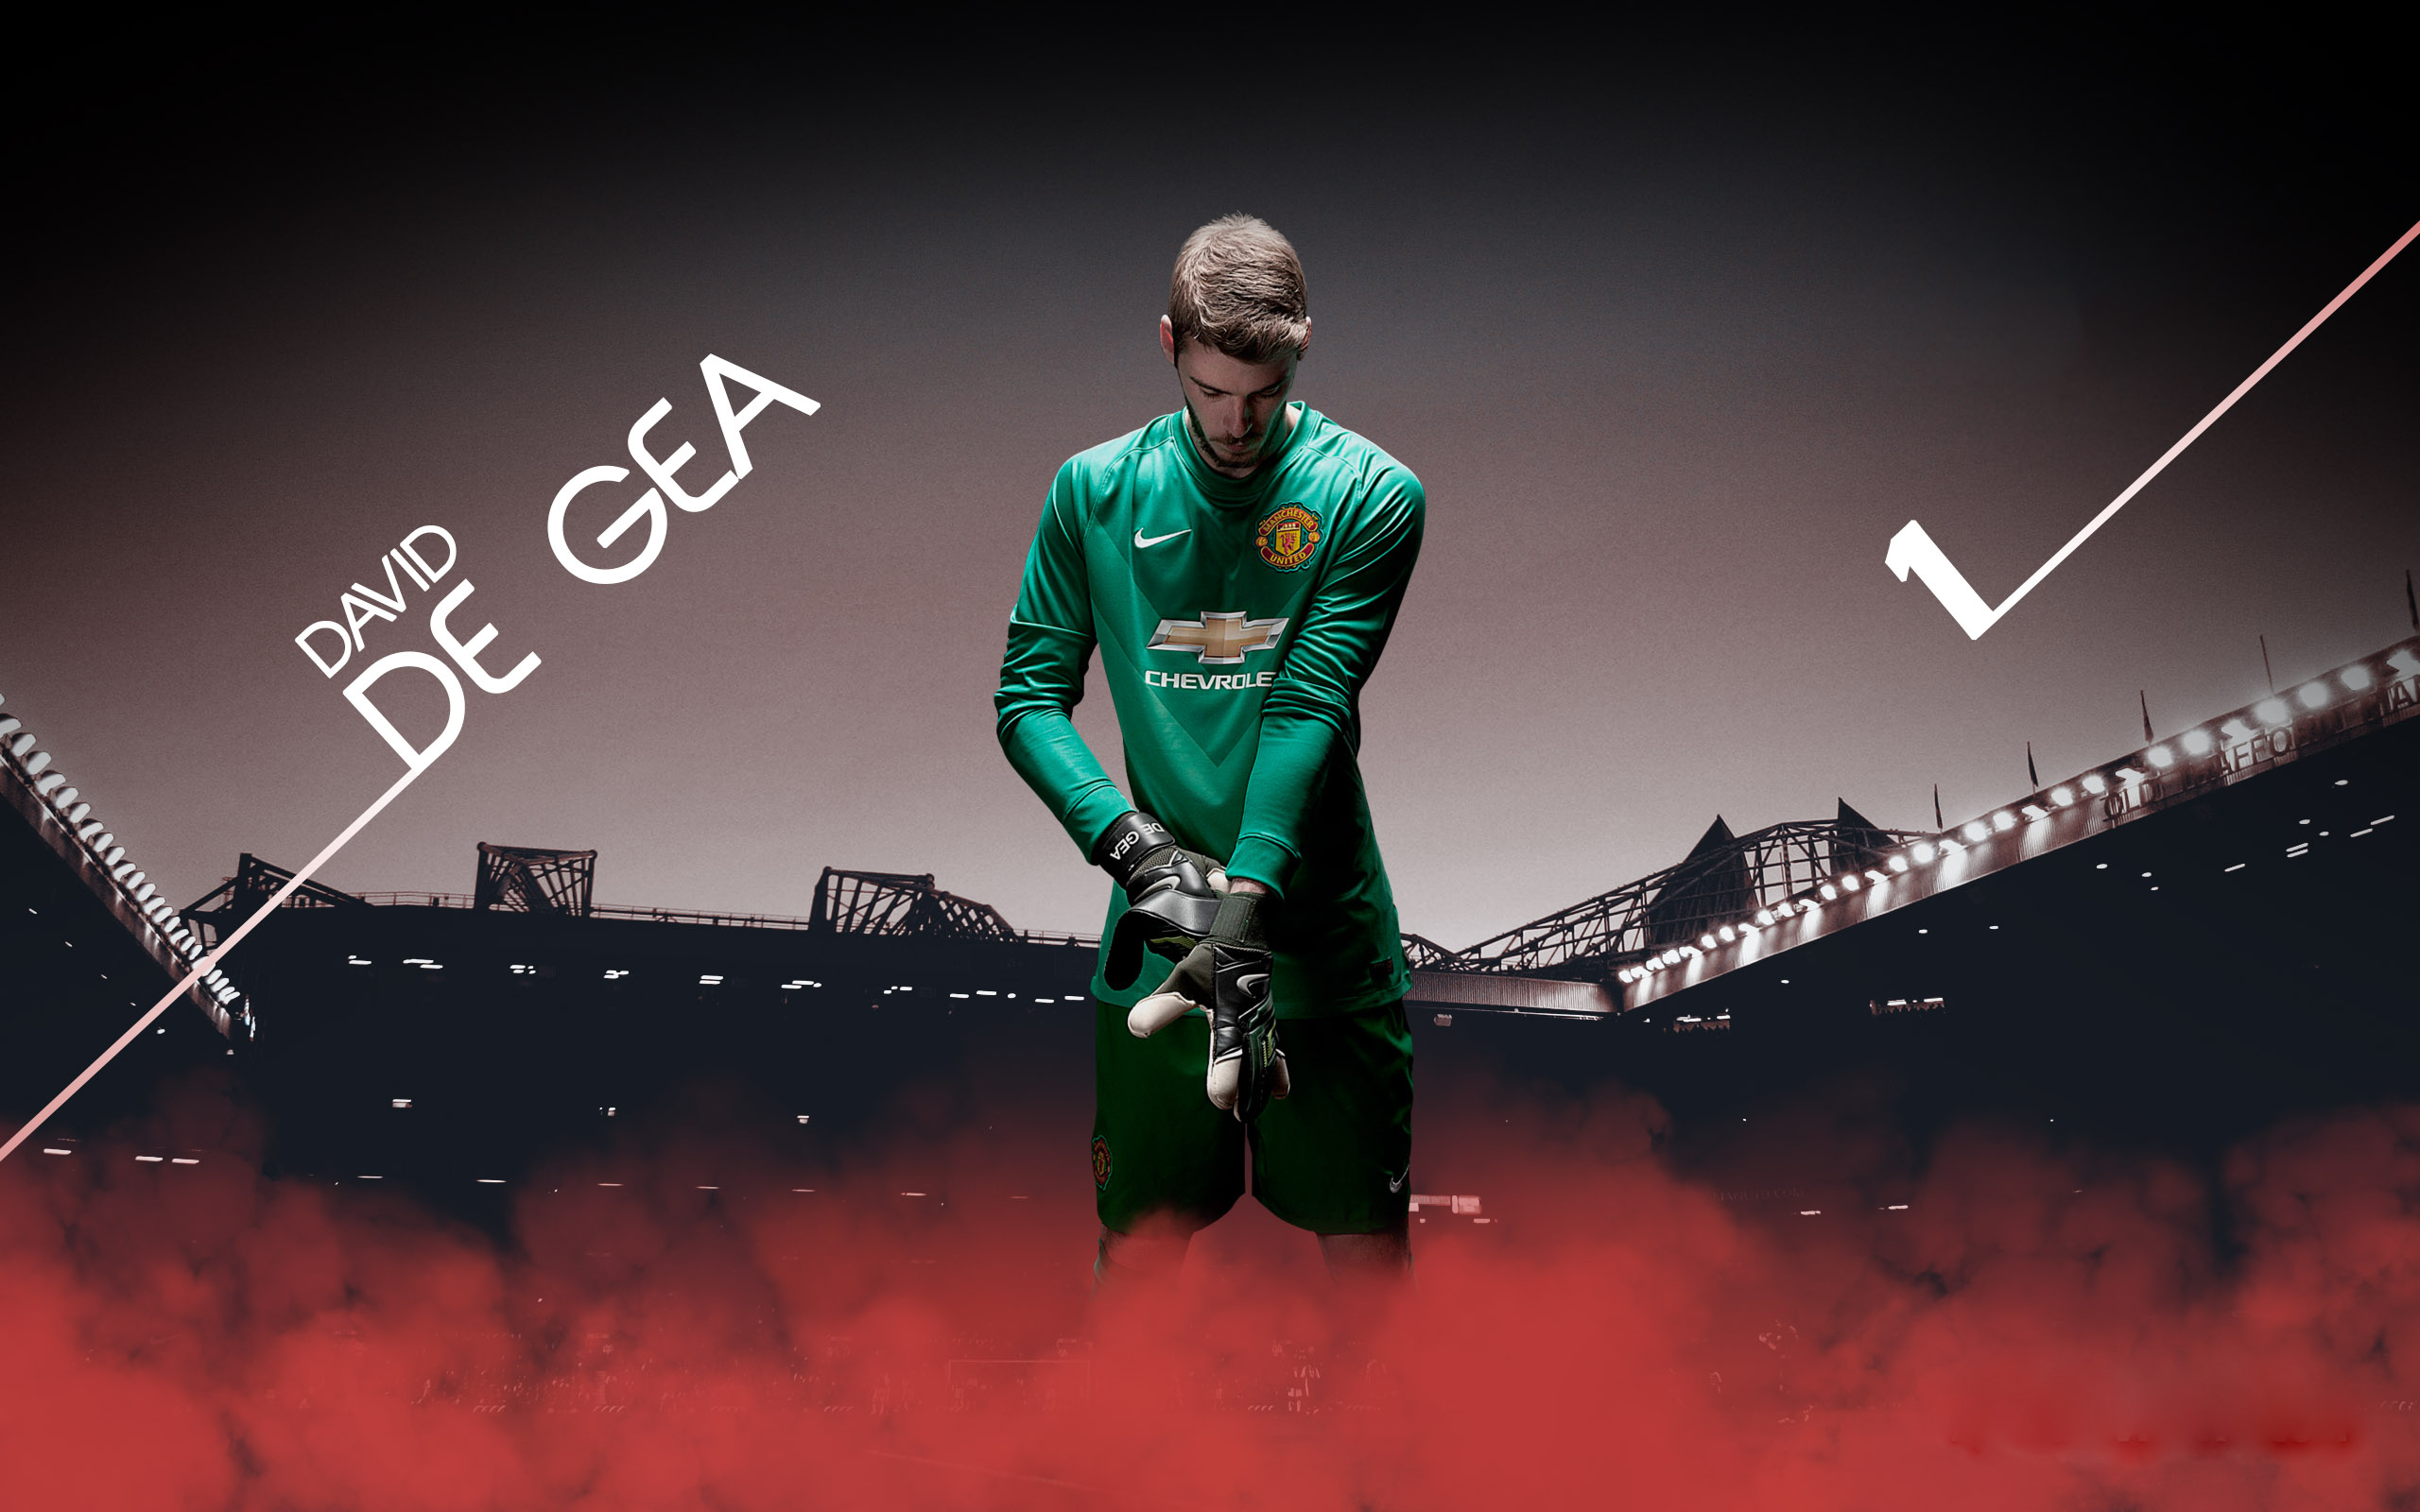 Download manchester united wallpaper hd.